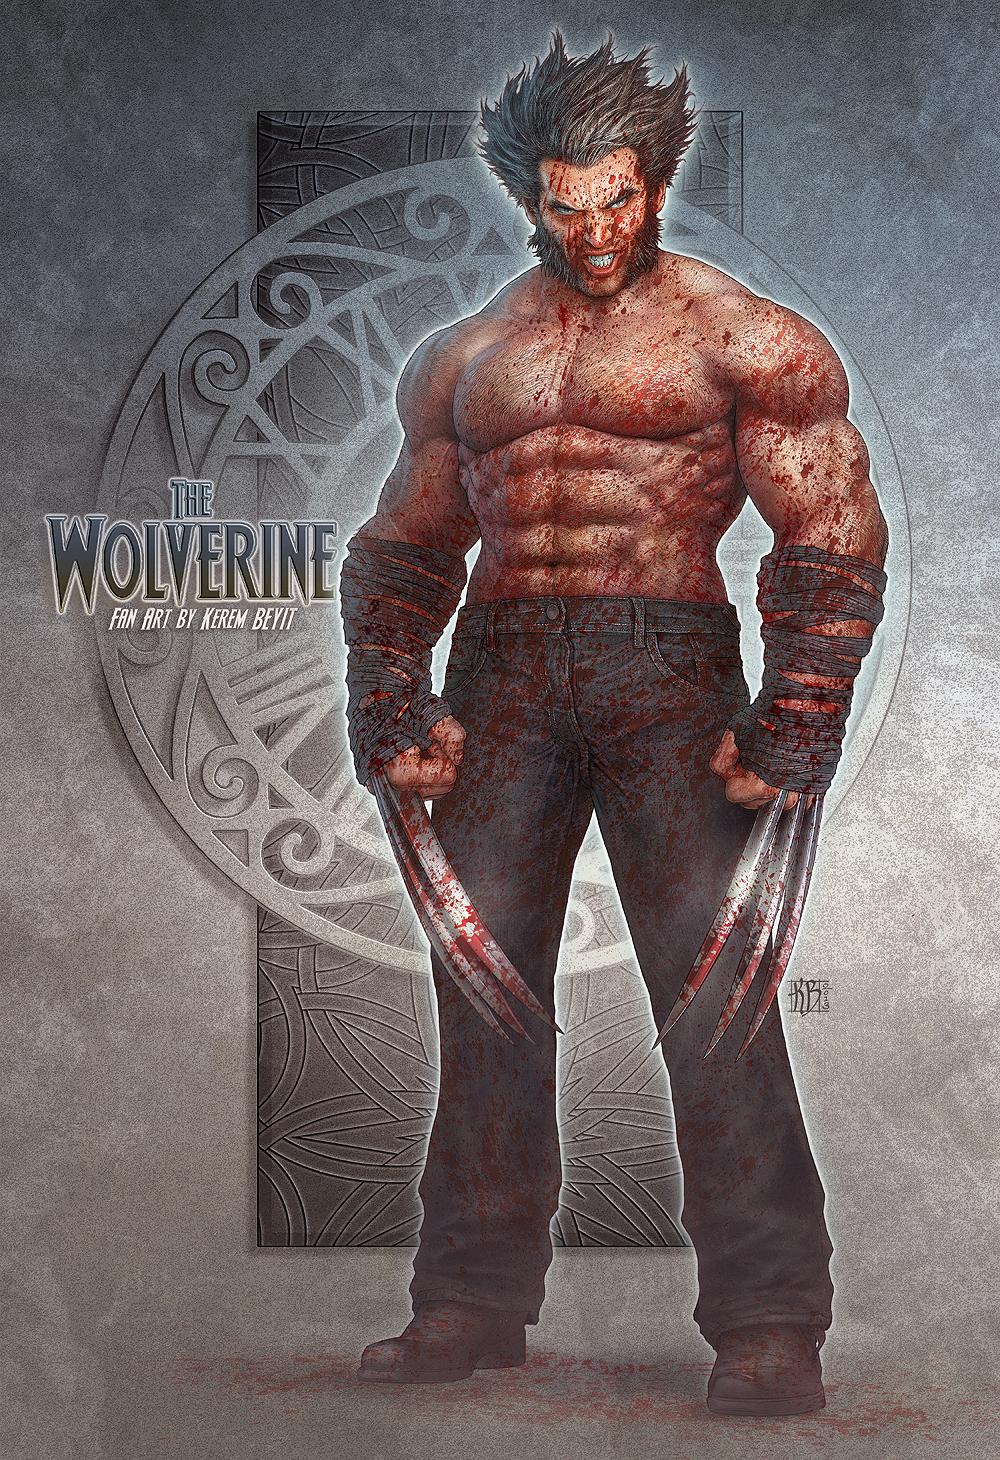 WOLVERINE Fan Art by kerembeyit